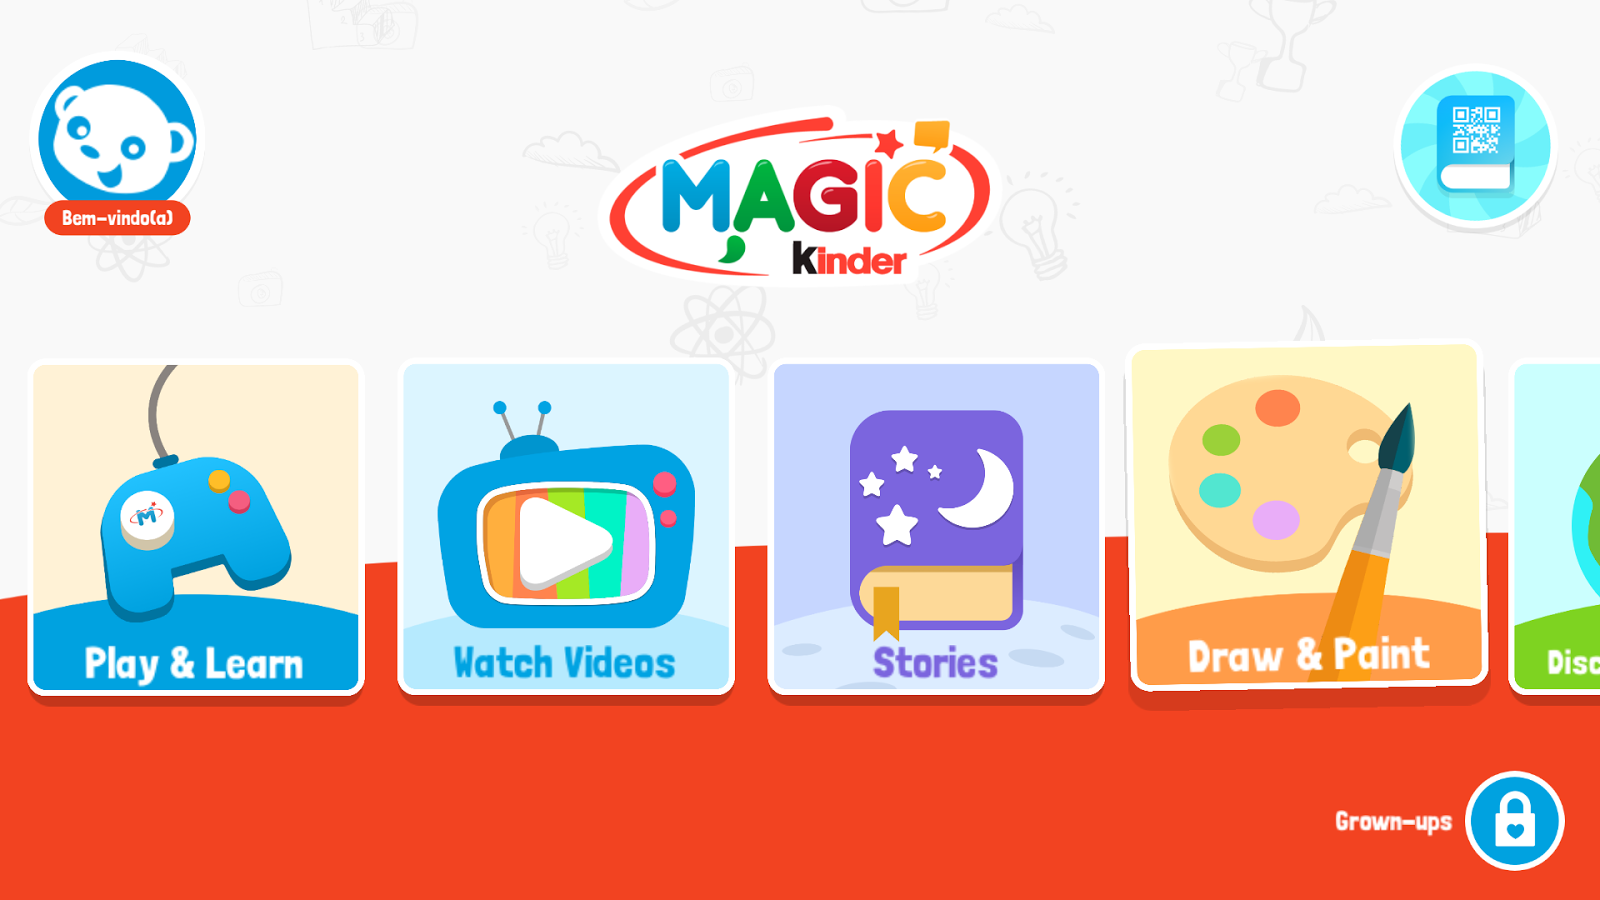 www.magic-kinder.com